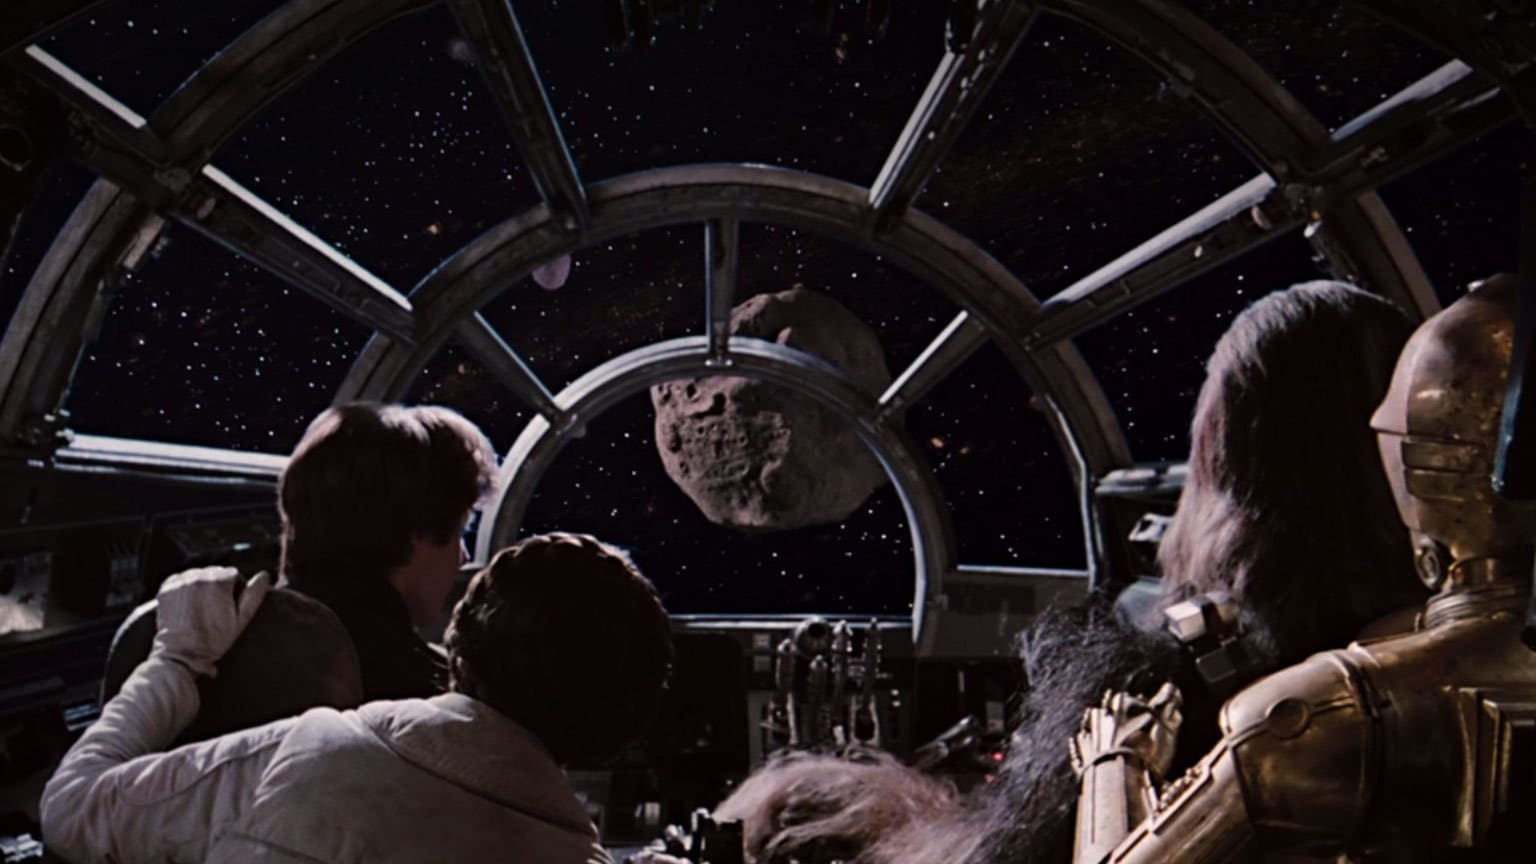 Empire at 40 | 6 Things We Learned from ILM's Live Stream Celebration of Empire at 40